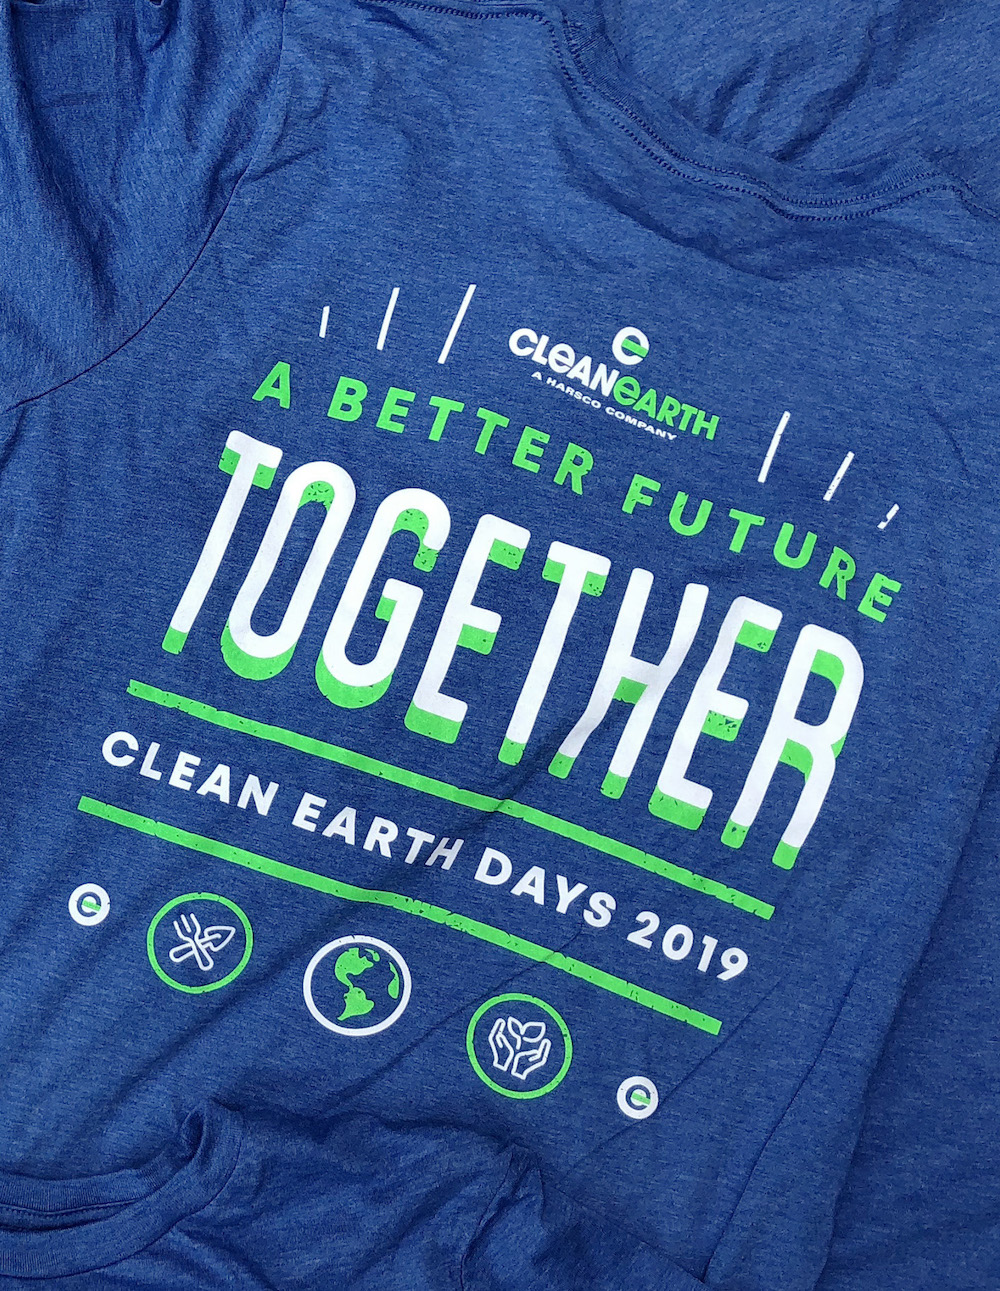 Clean_Earth_Days_2019